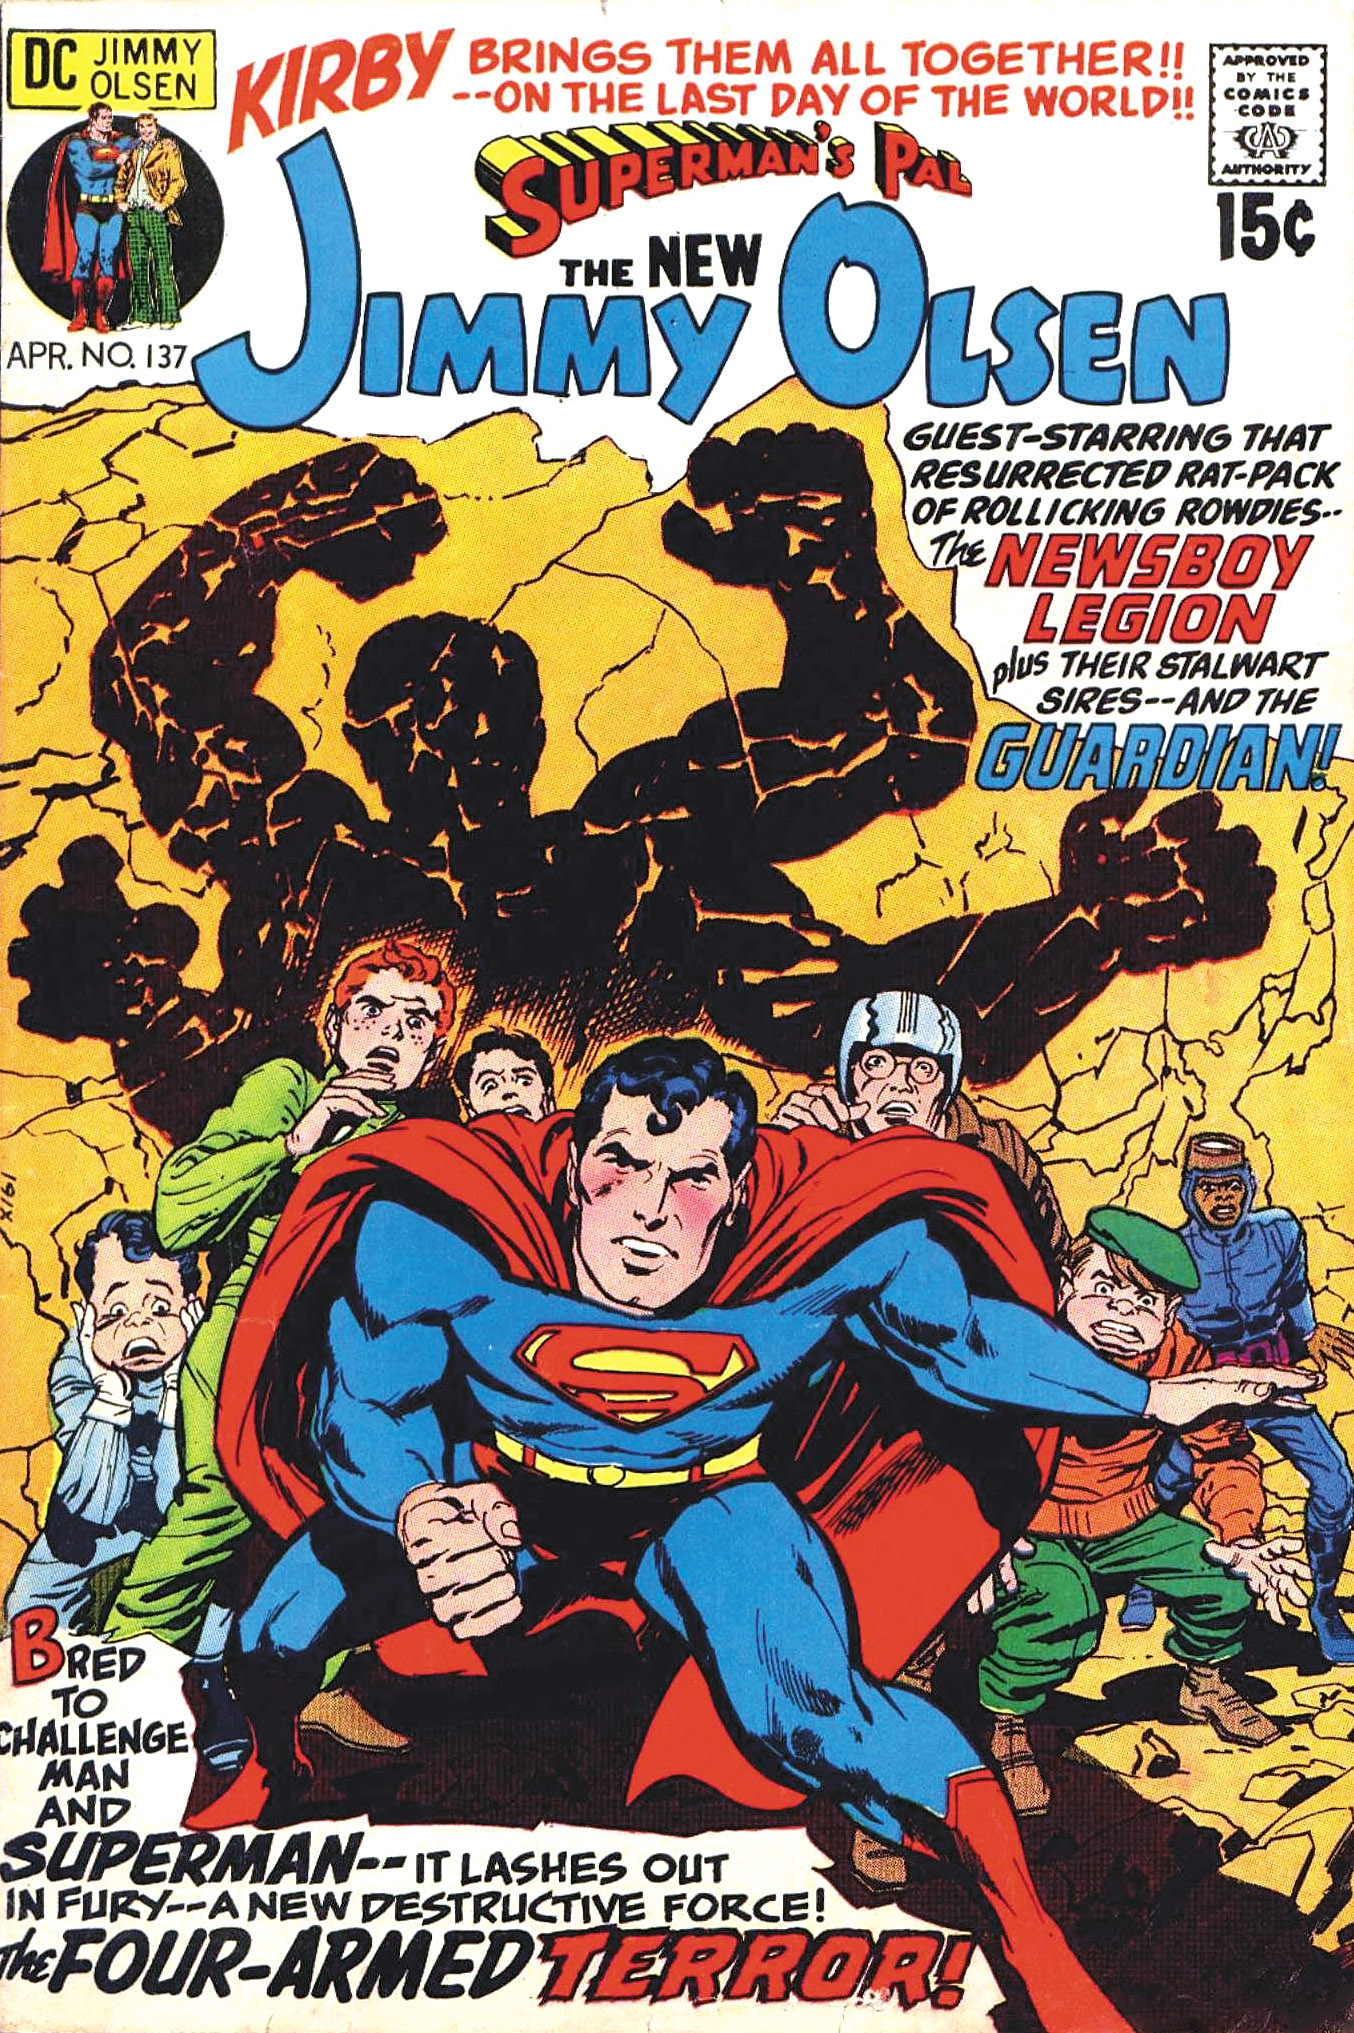 Jimmy Olsen Superman's Pal